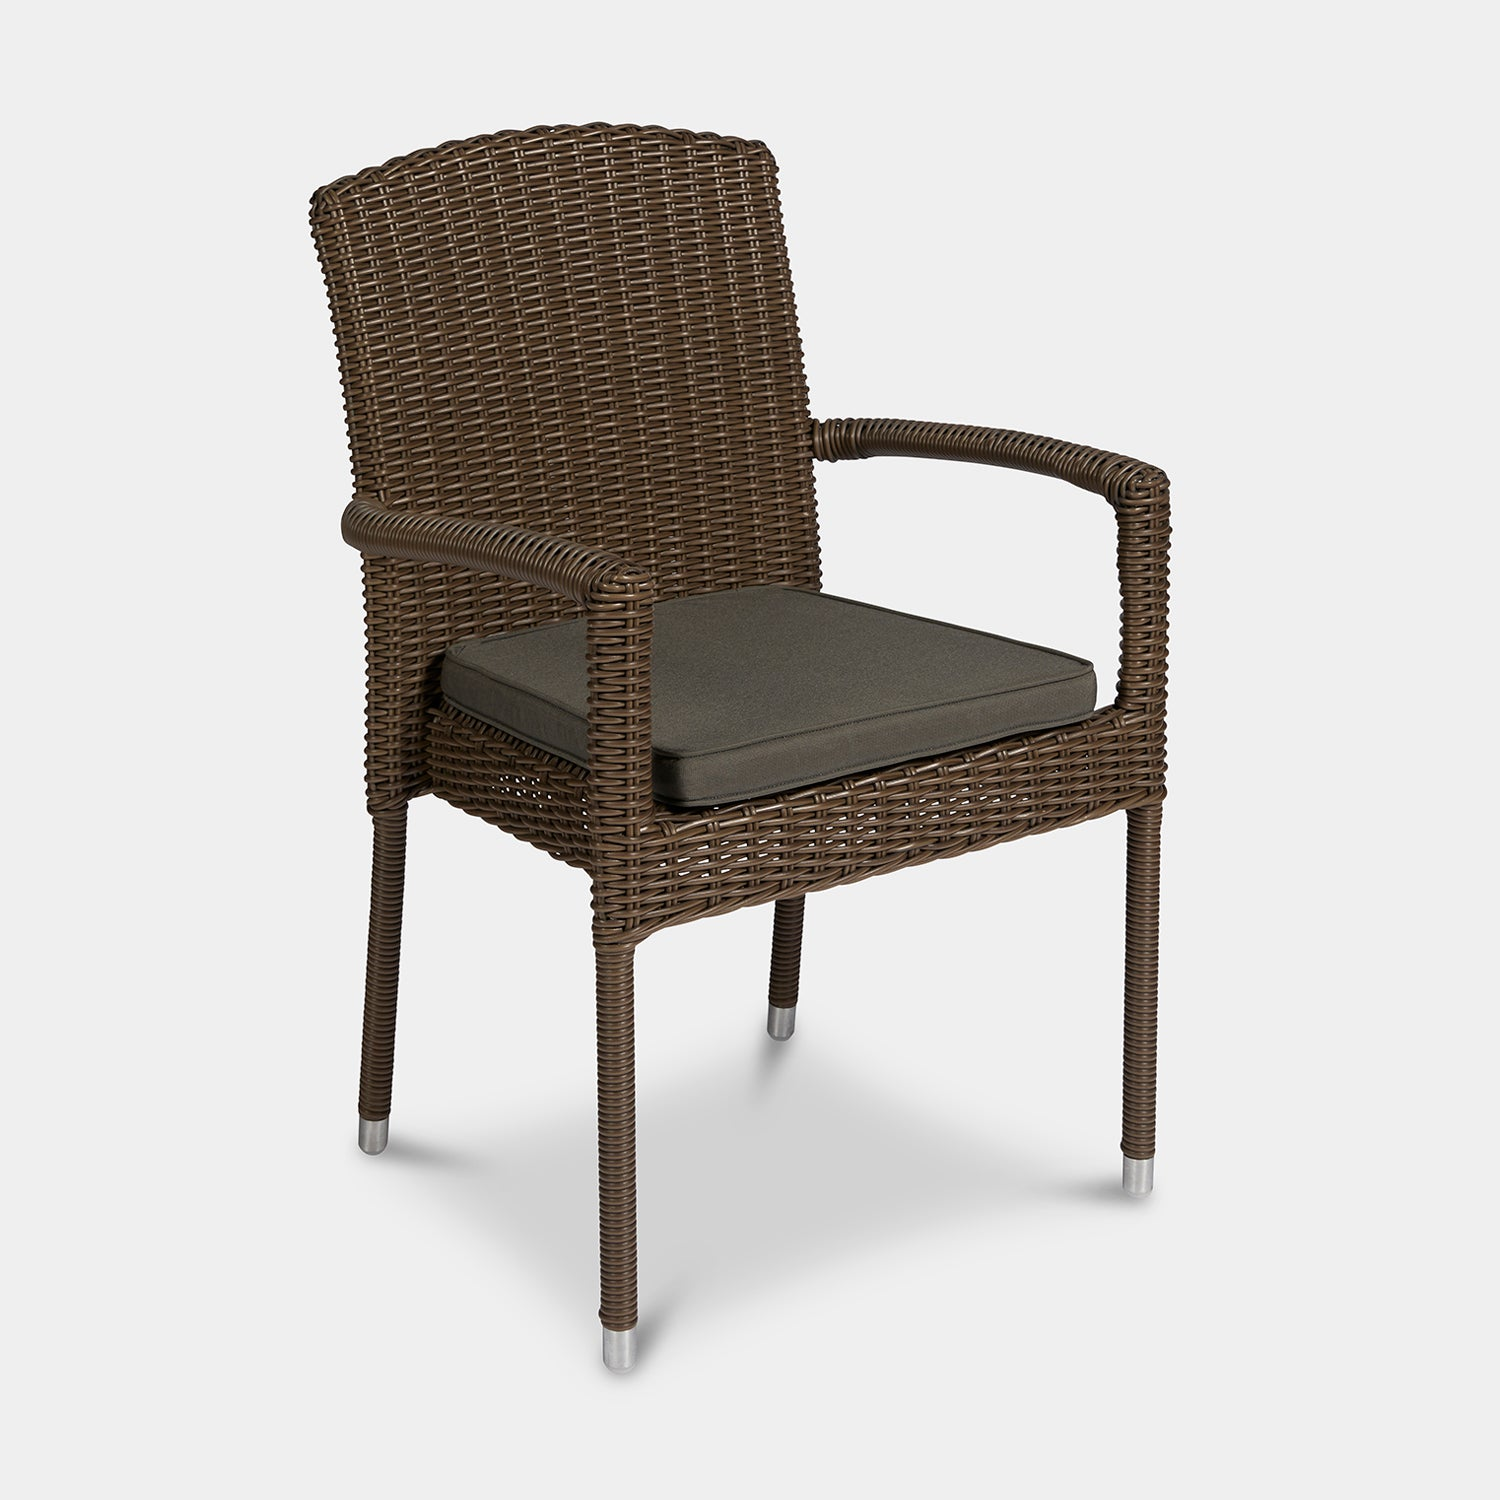 Wicker-Outdoor-Chair-Kubu-Bates-Arms-r1